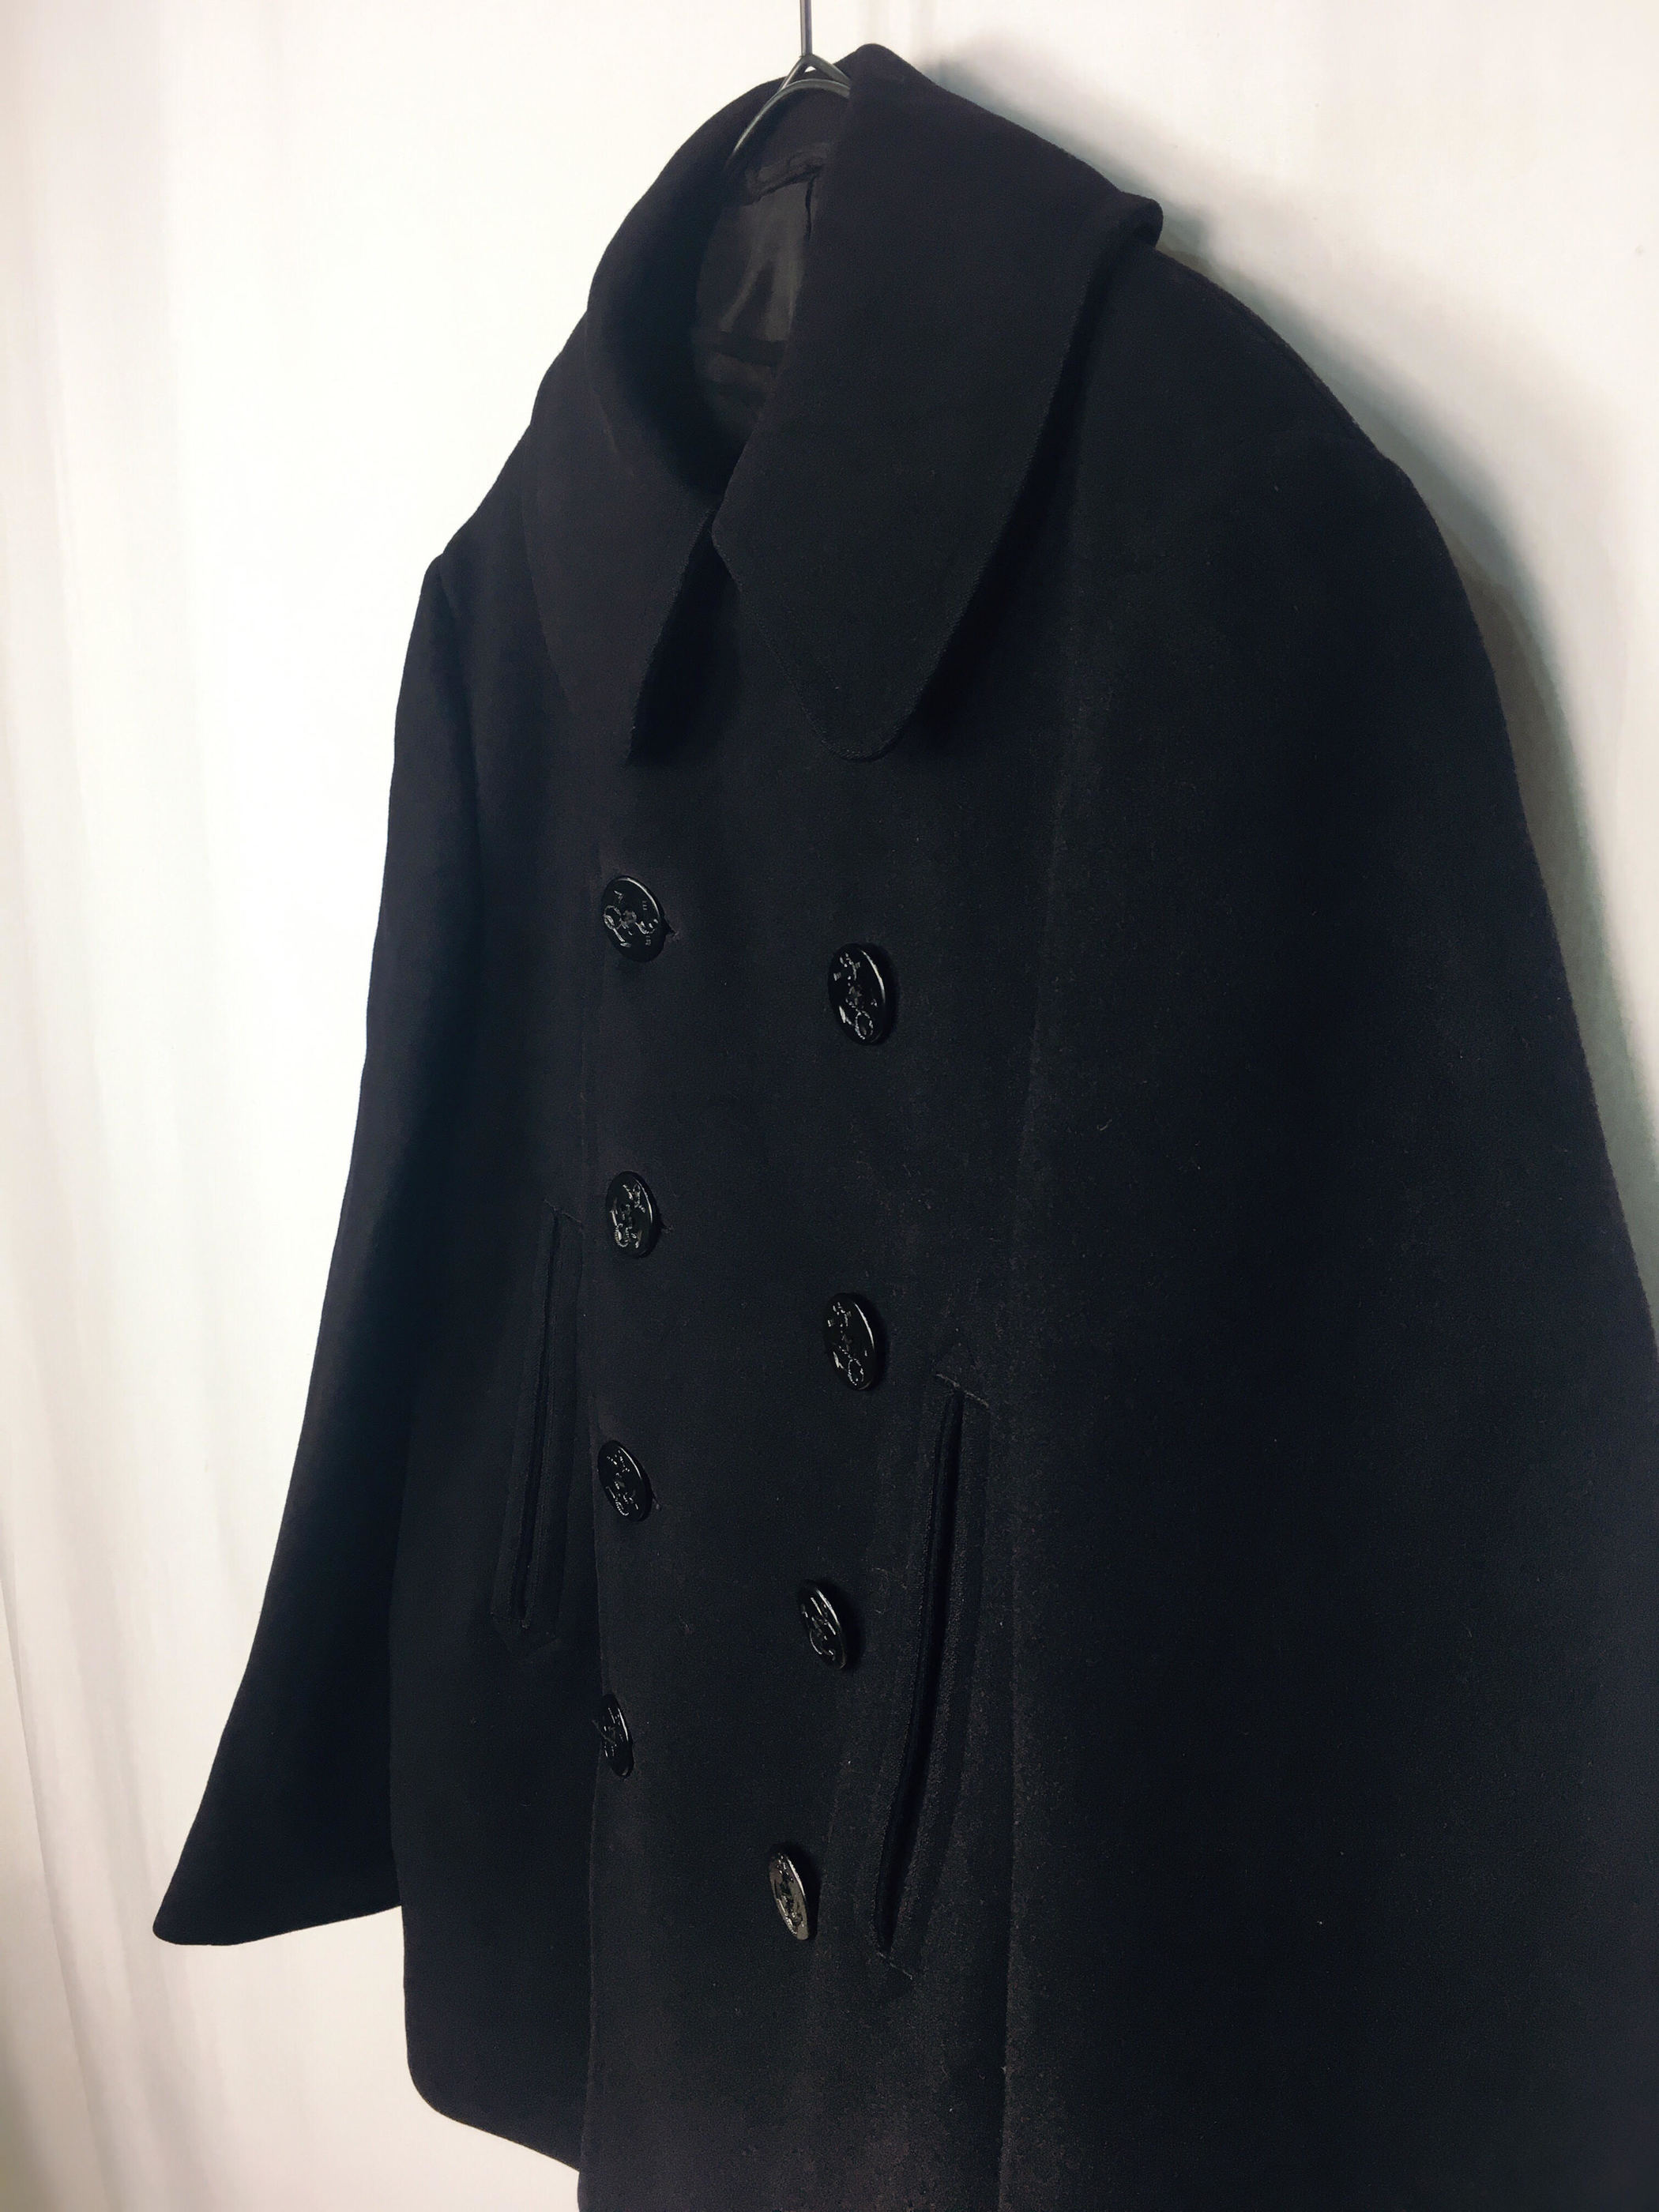 dracaena 40 39 s u s navy vintage 10 botton p coat u sネイビーp